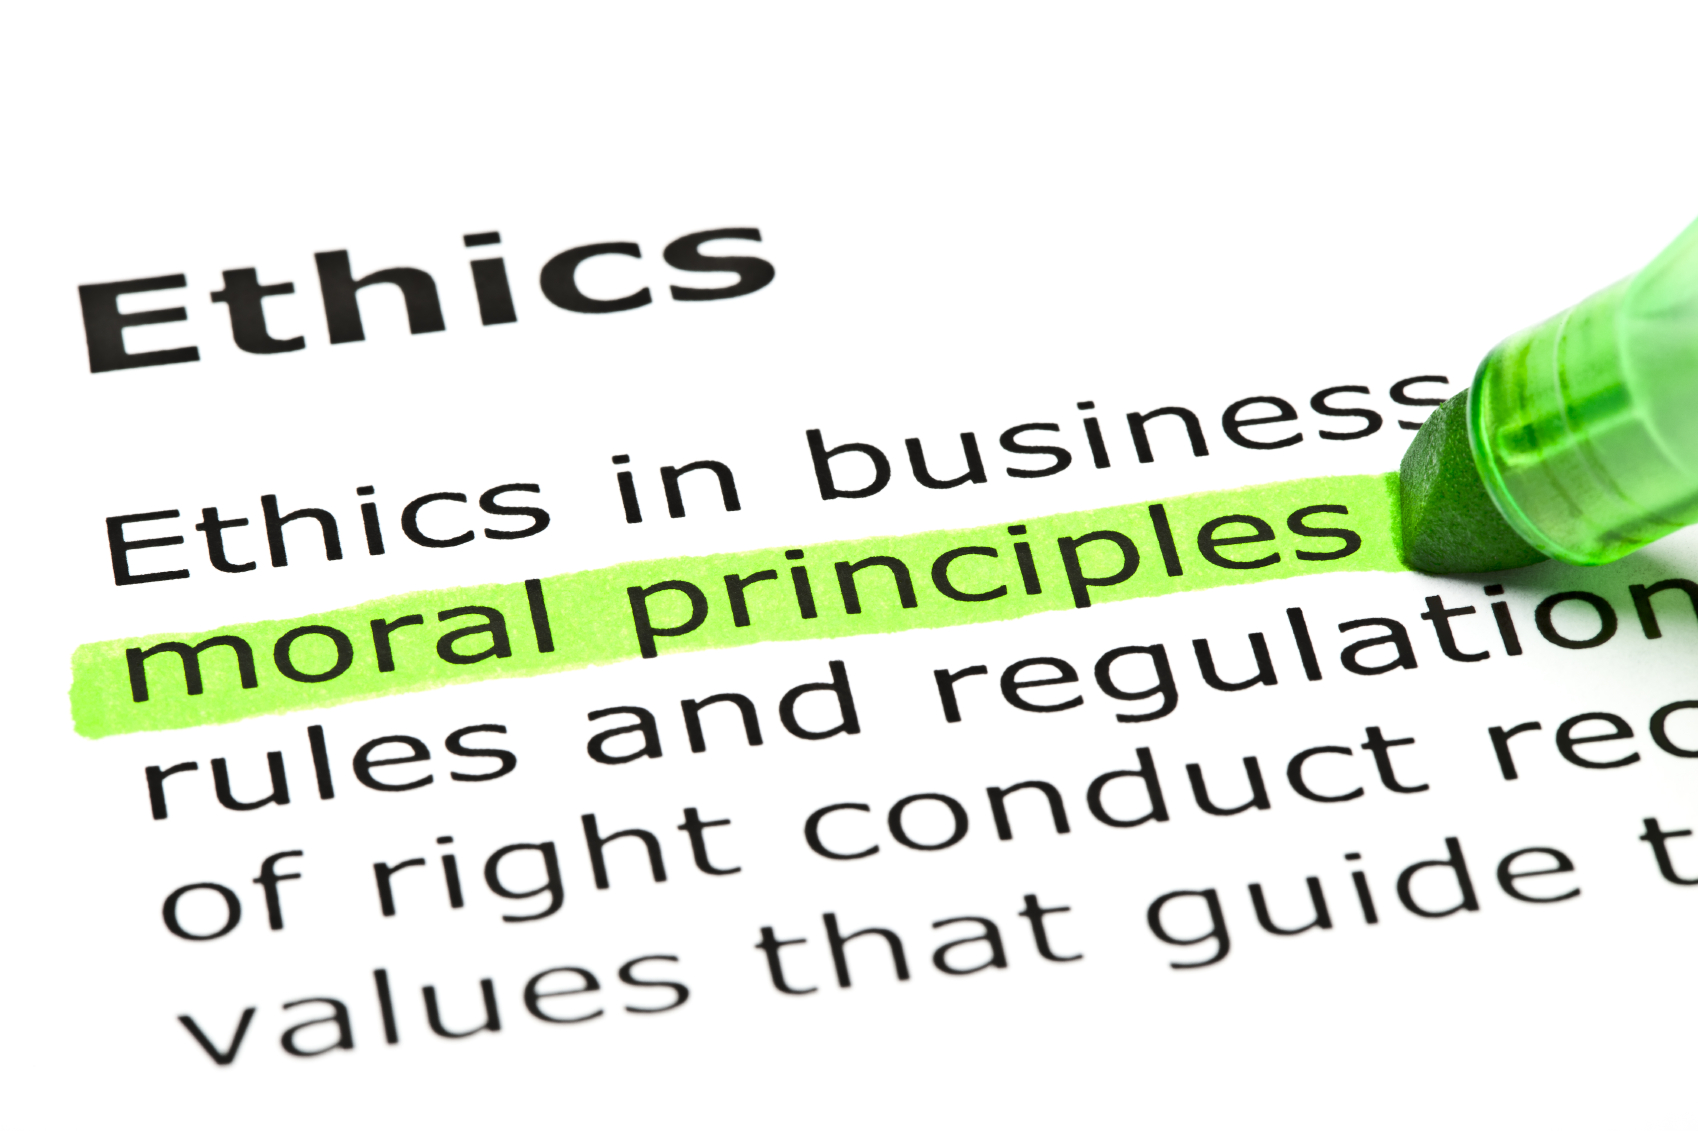 ethics and ethical behavior Ethics: more than just a set of  rules as 'ethics laws' or 'ethical  to reinforce positive ethical behavior and discourage improper conduct.